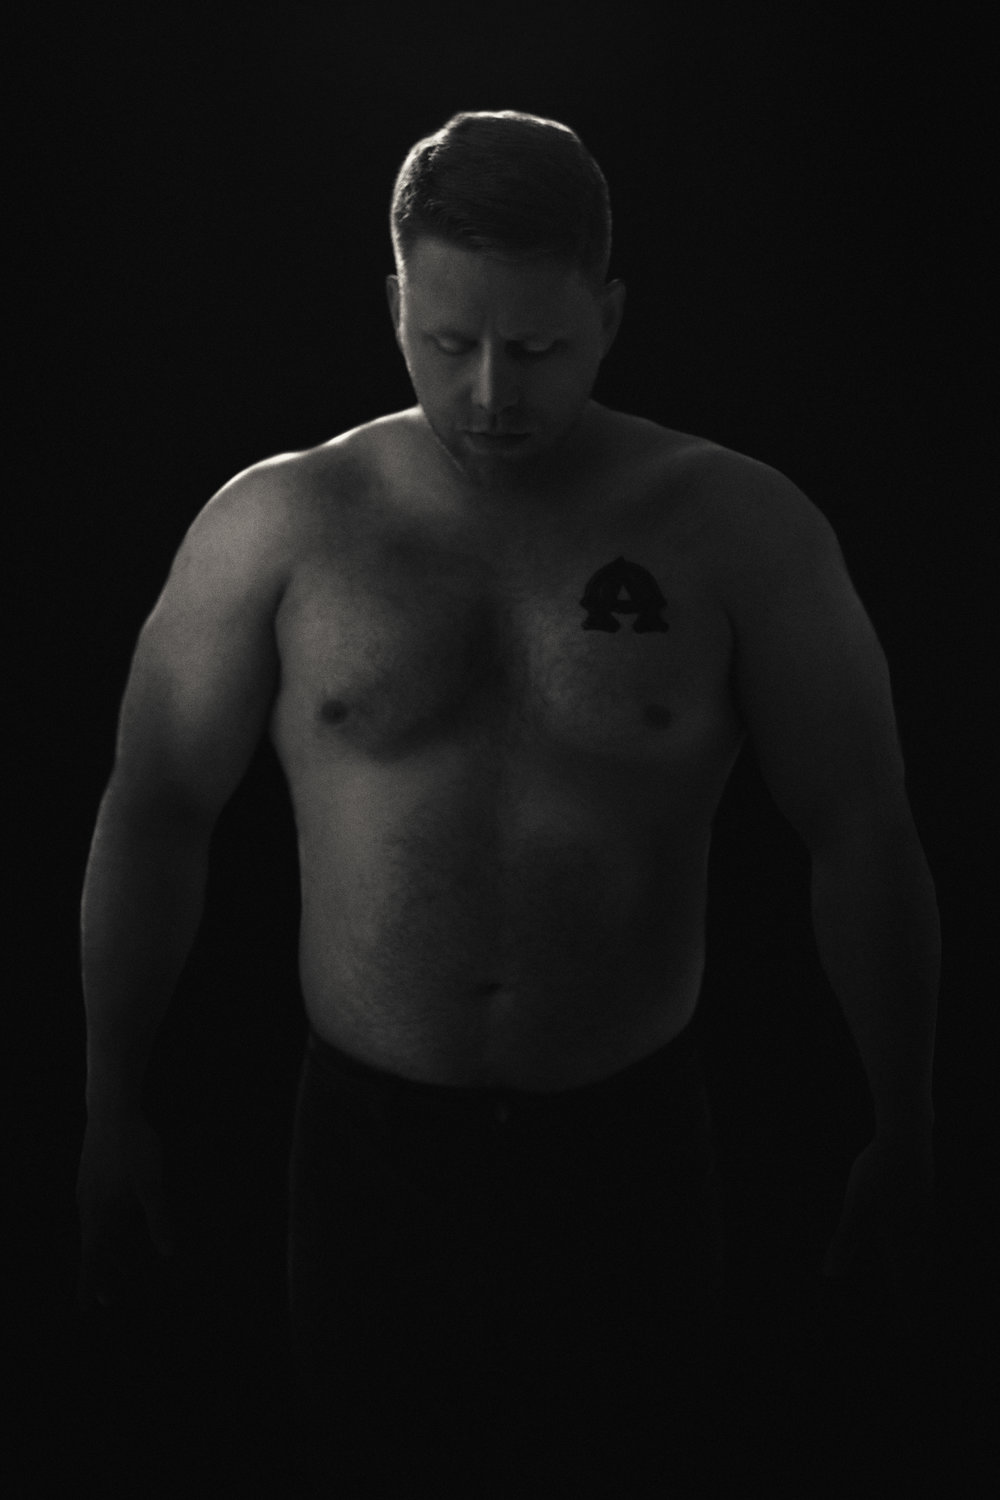 fitness portrait - journey - builtbyjerm